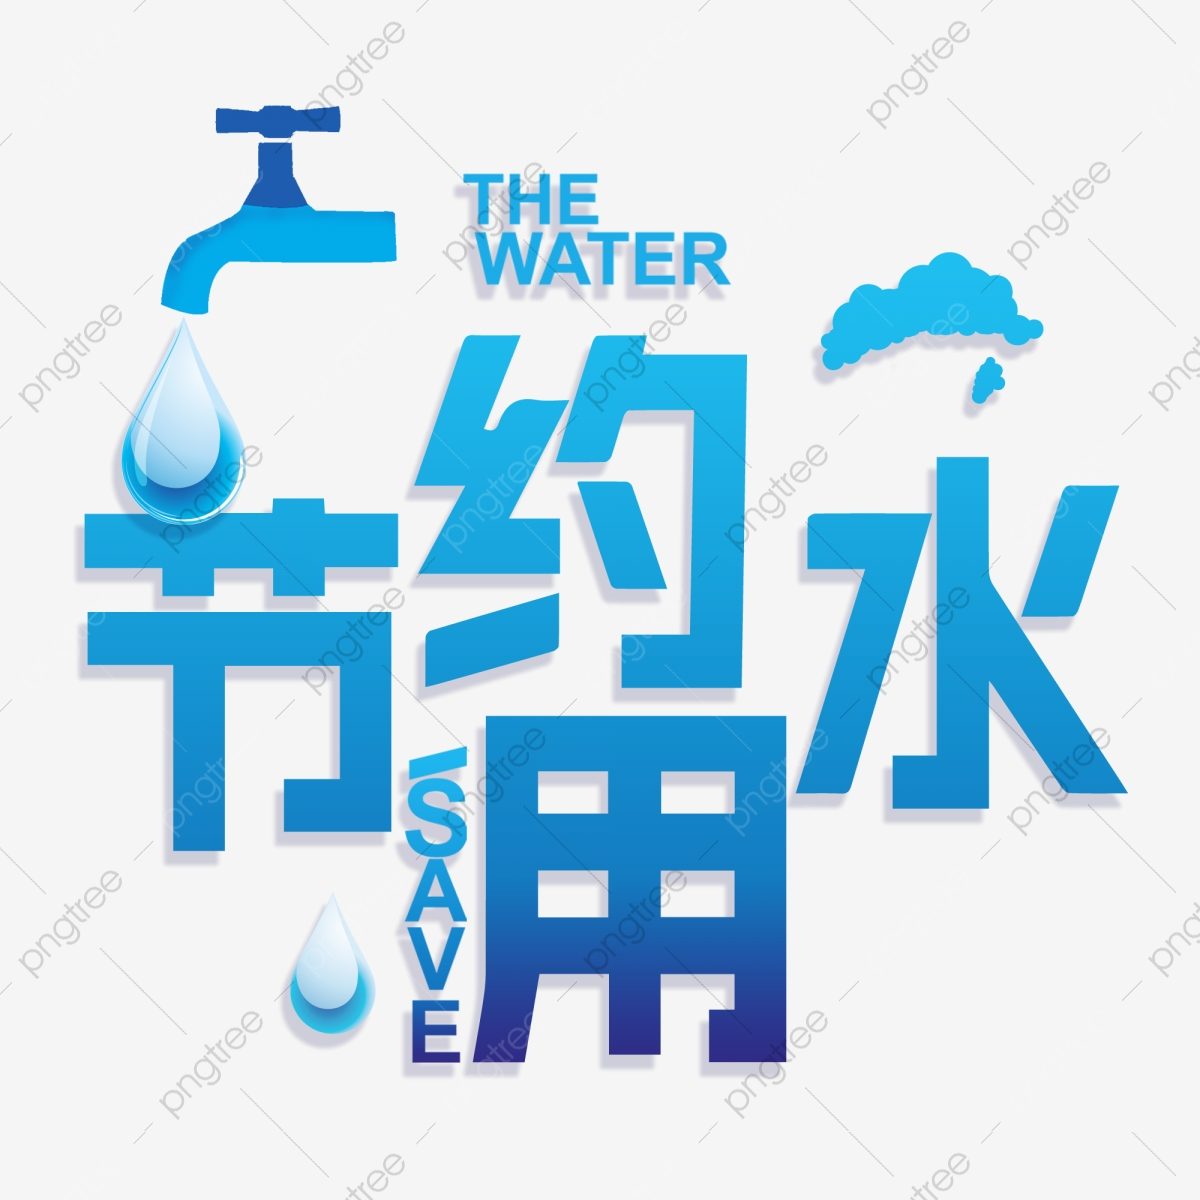 Creative Water Conservation Poster, Conserve Water, Poster.